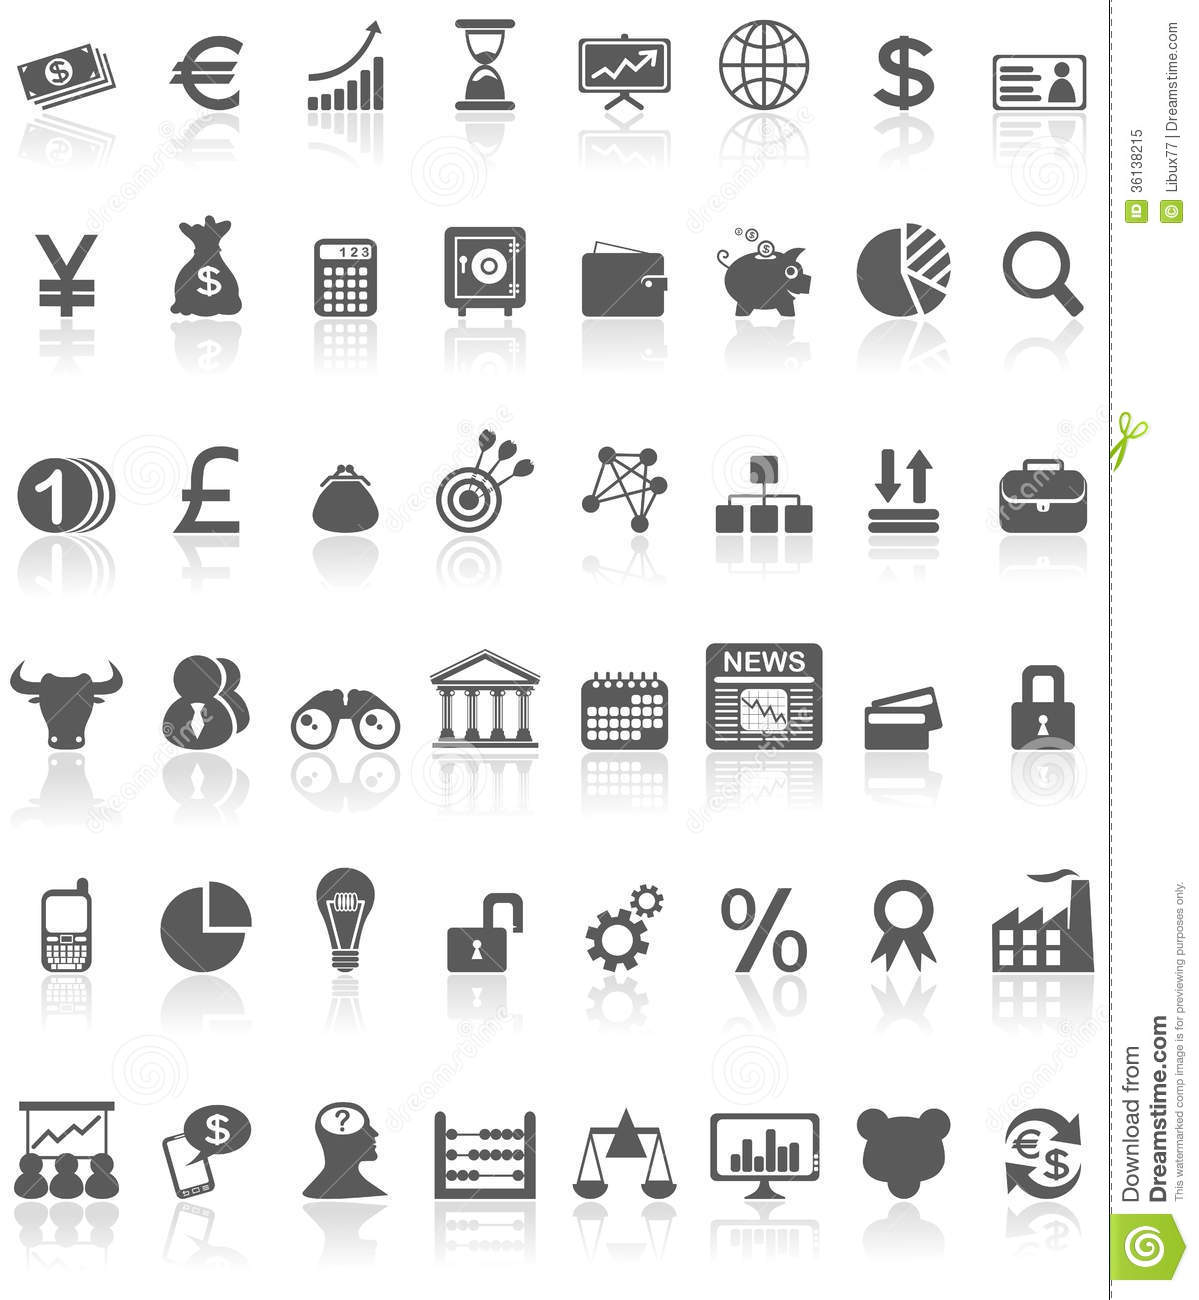 Financial icons collection black on white stock vector royalty free stock photo biocorpaavc Image collections